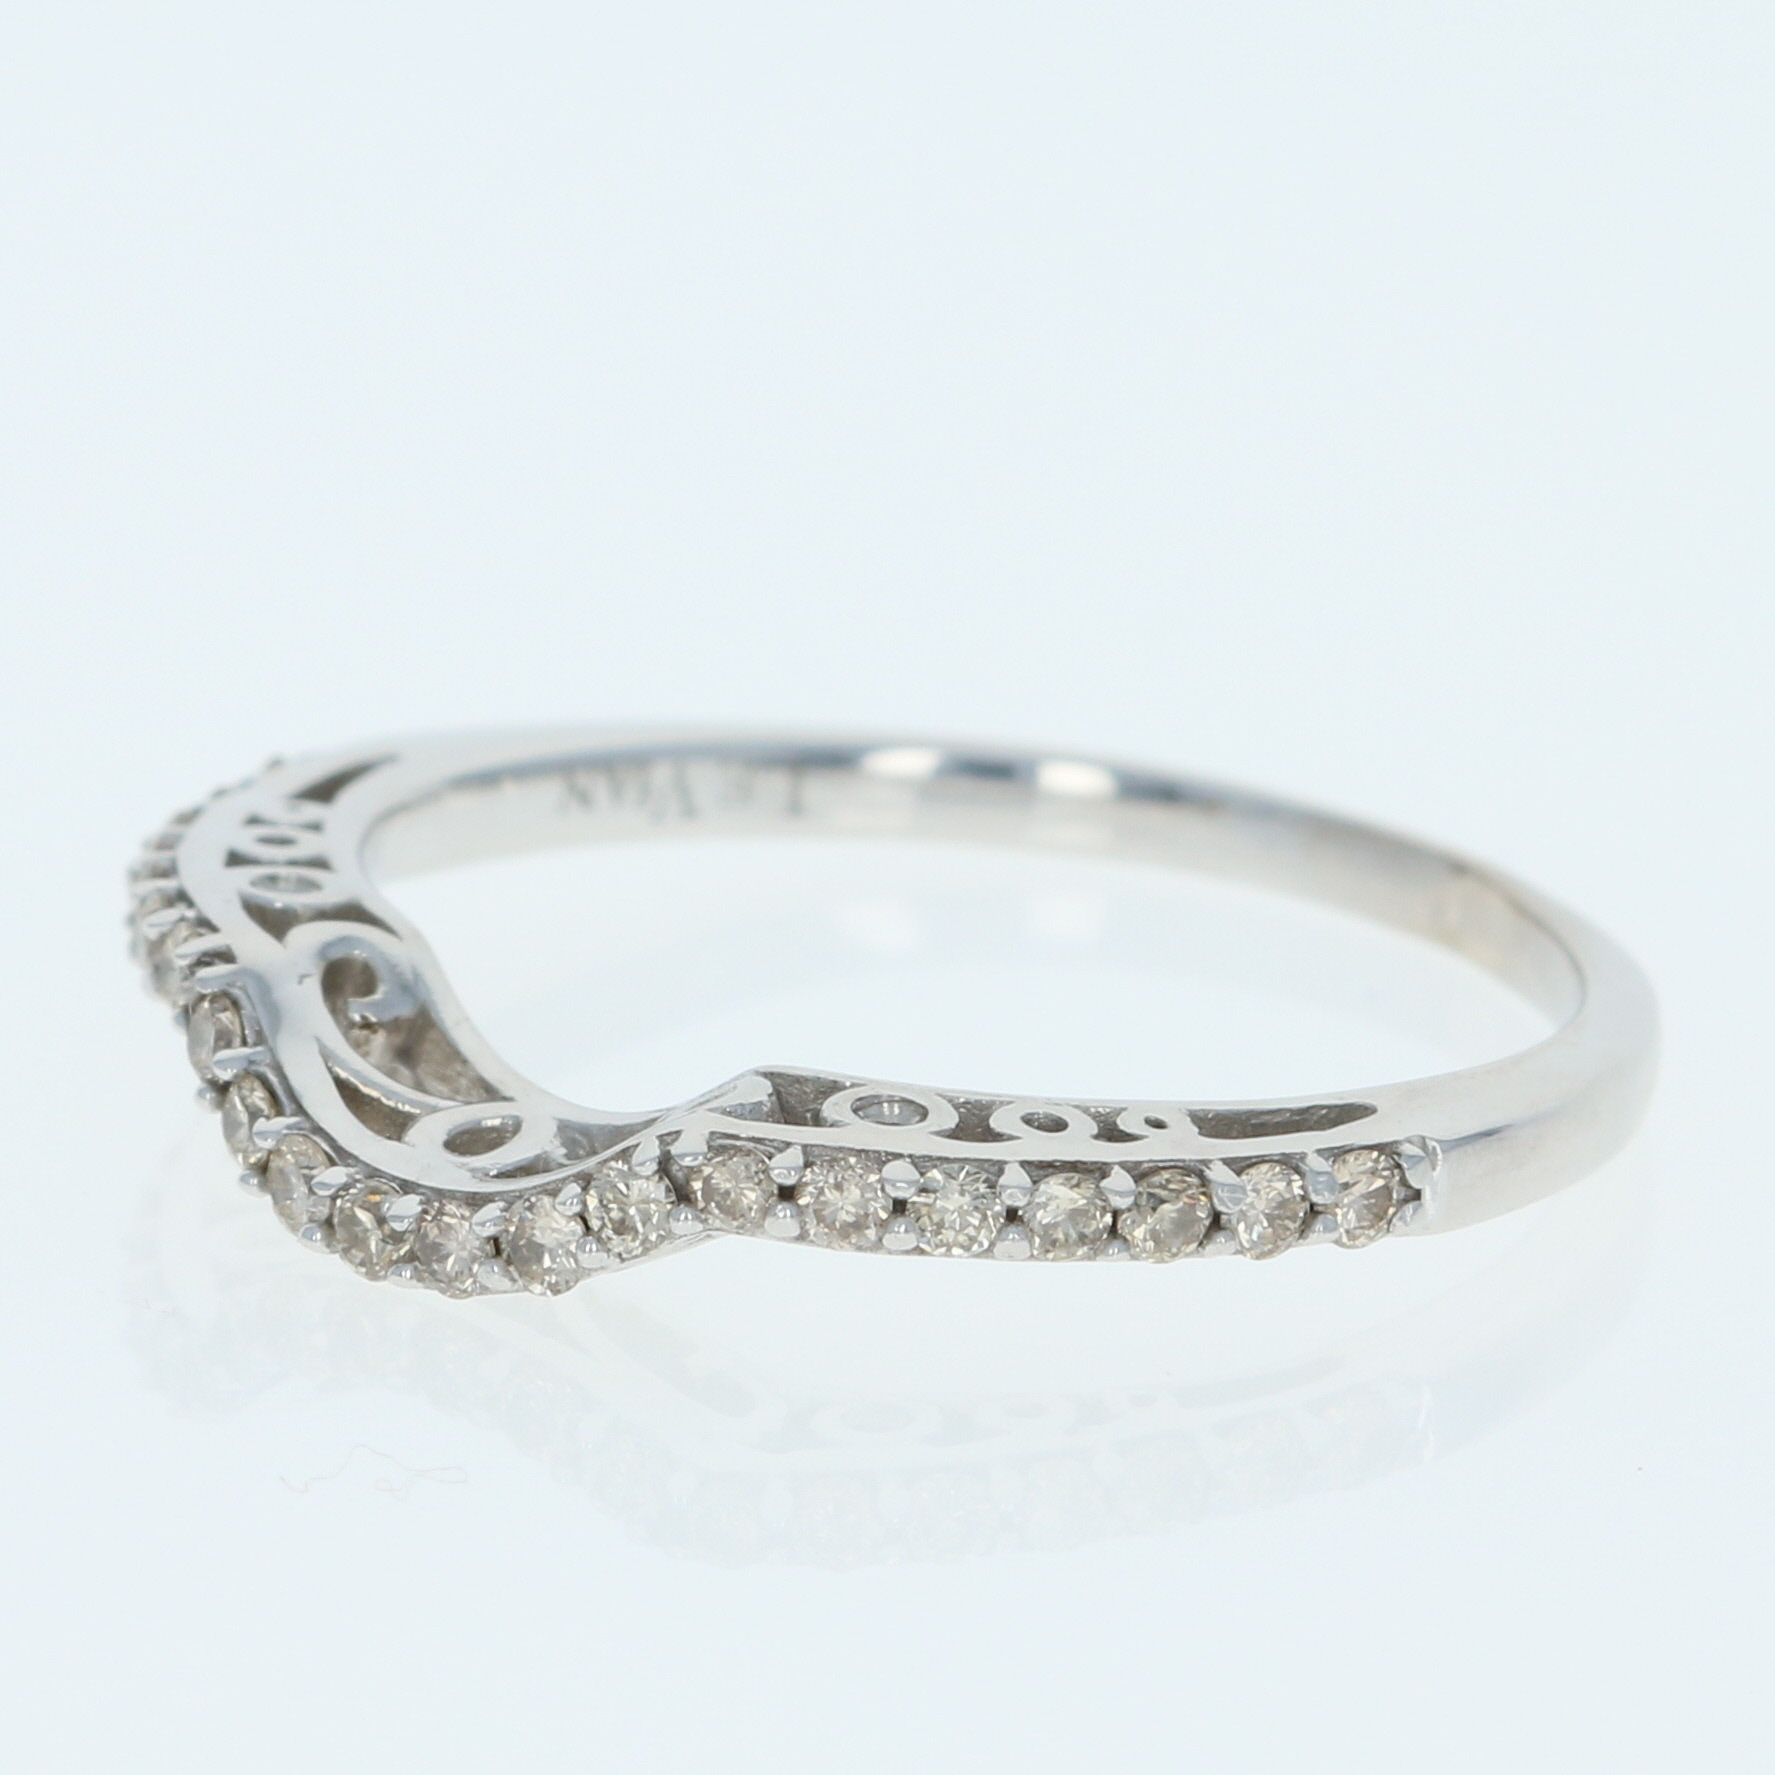 gold ring en kay to vanilla diamonds mv tw zoom wedding rings vian kaystore ct zm chocolate hover le